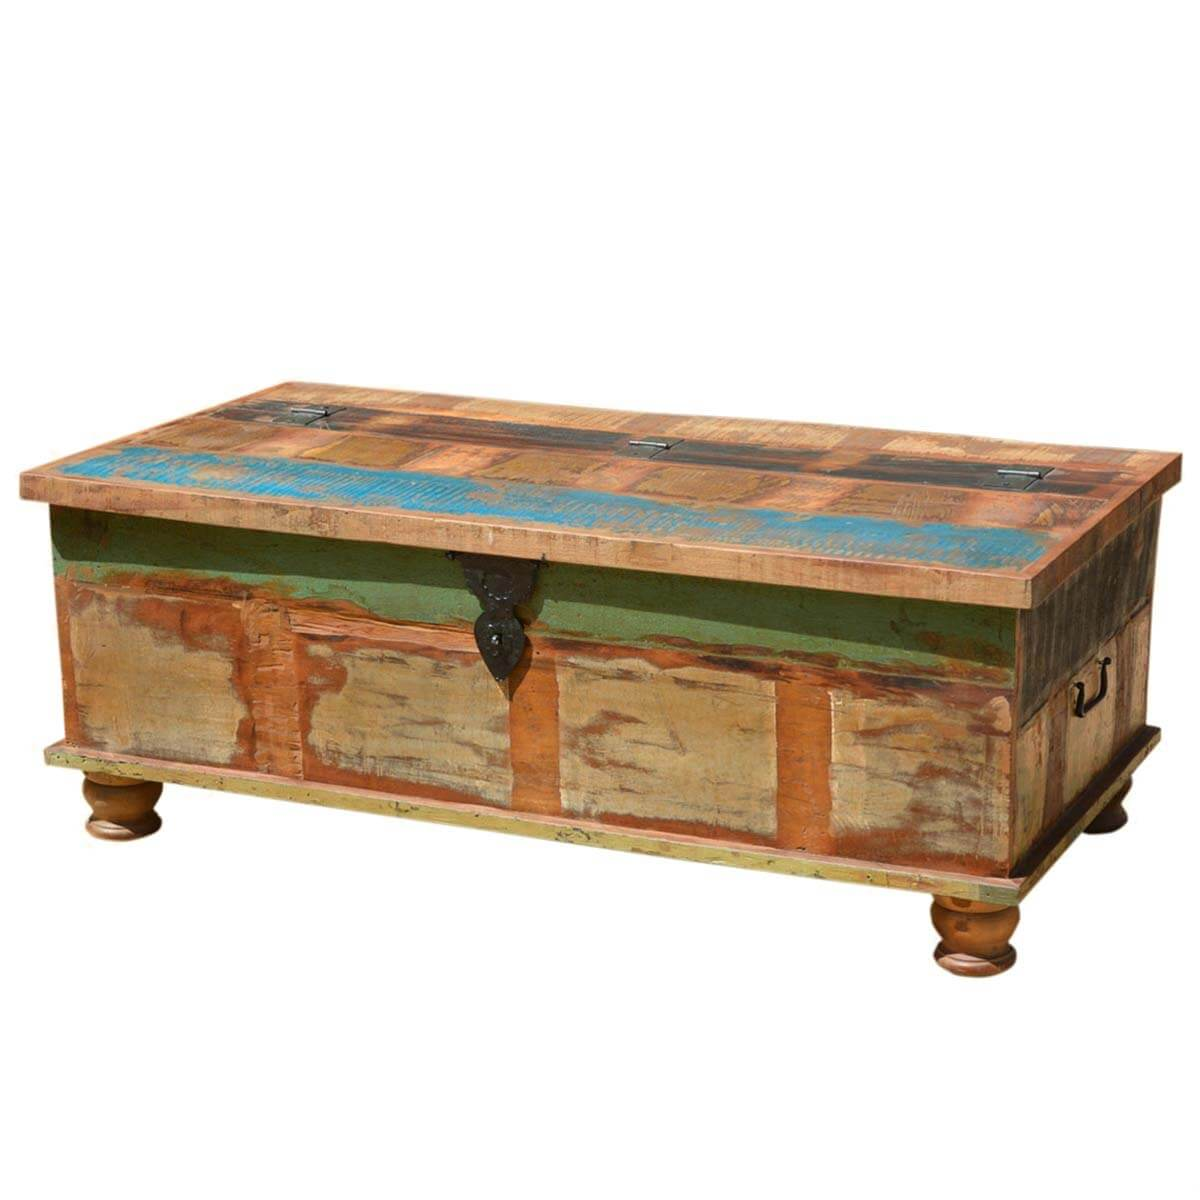 Grinnell rustic reclaimed wood coffee table storage trunk Trunks coffee tables